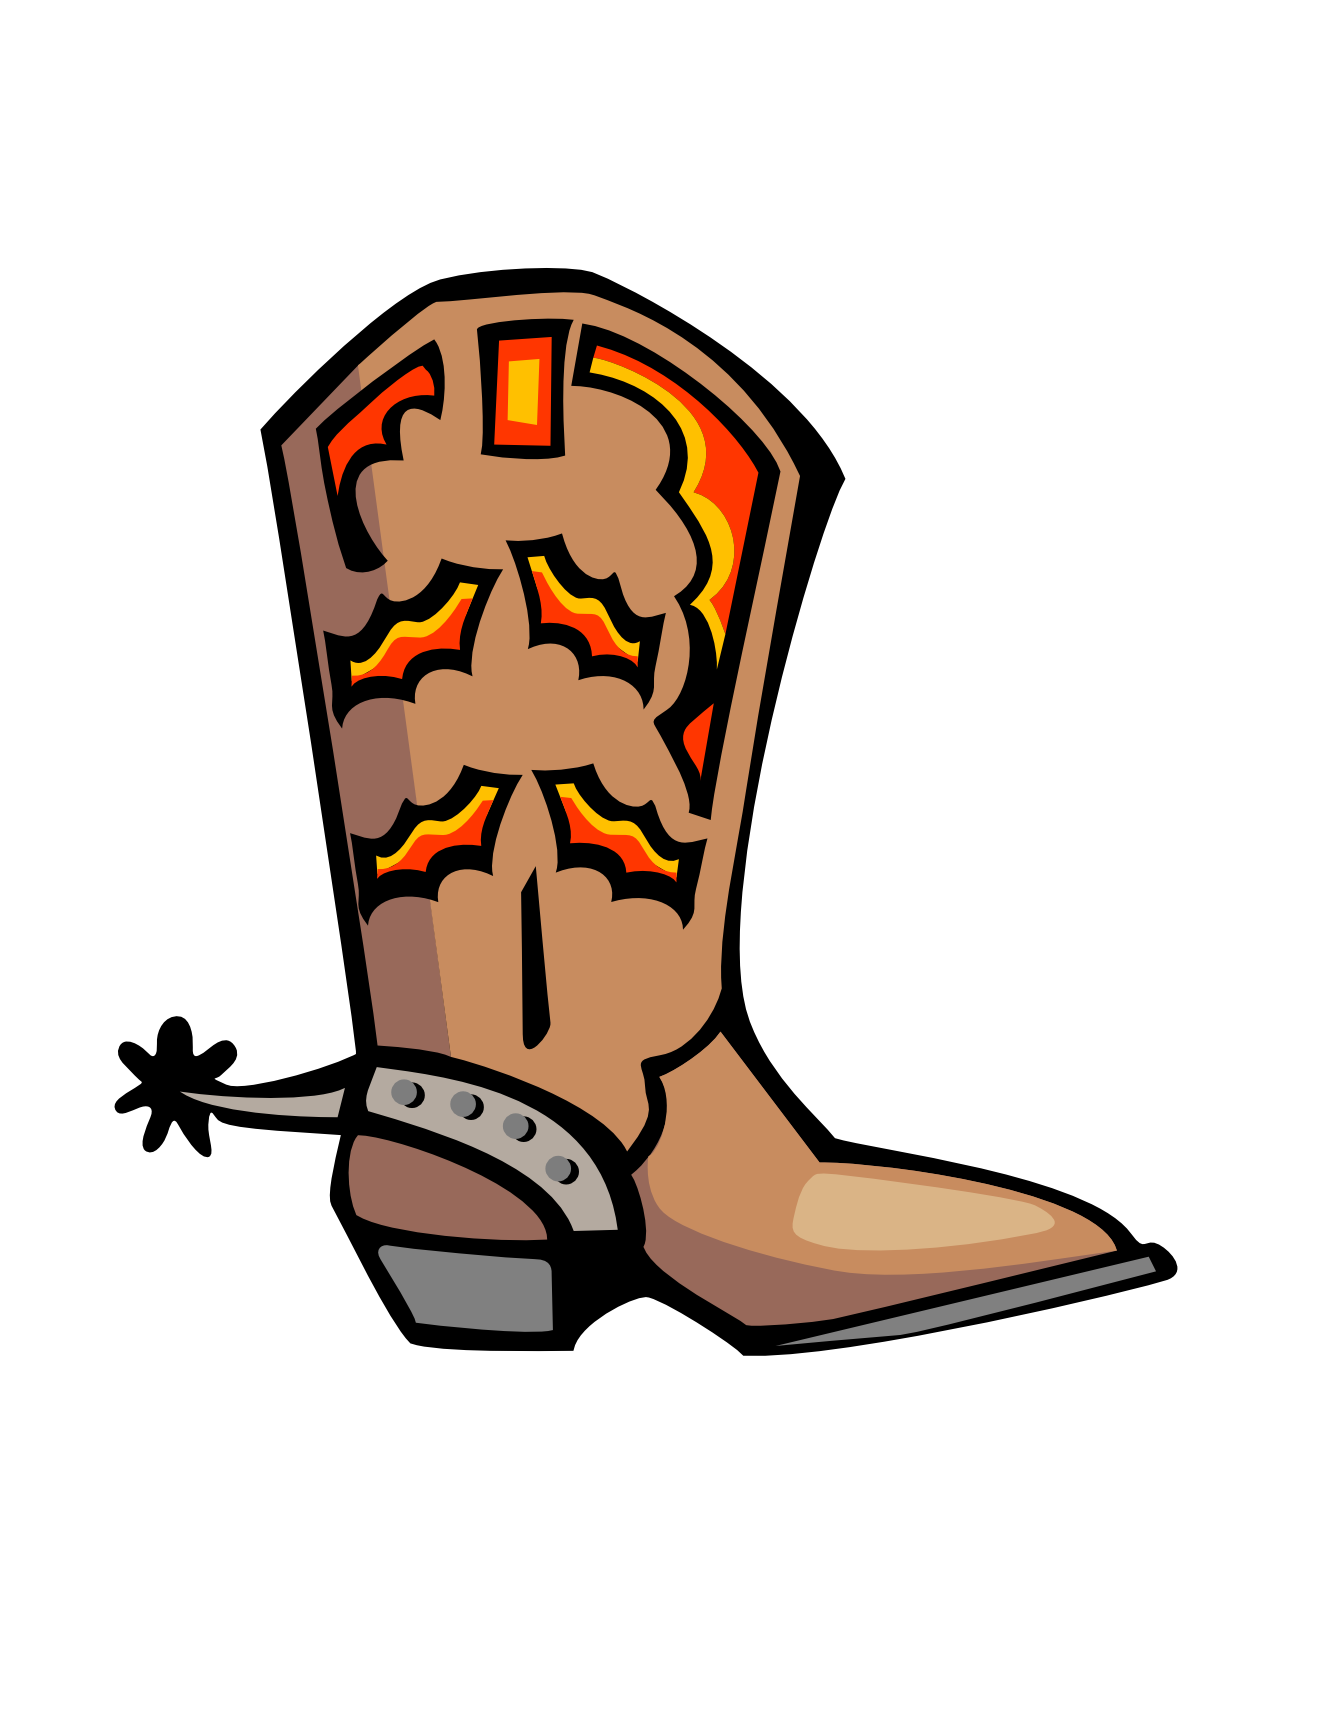 Cartoon Cowboy Boots Clip Art N12 free image.